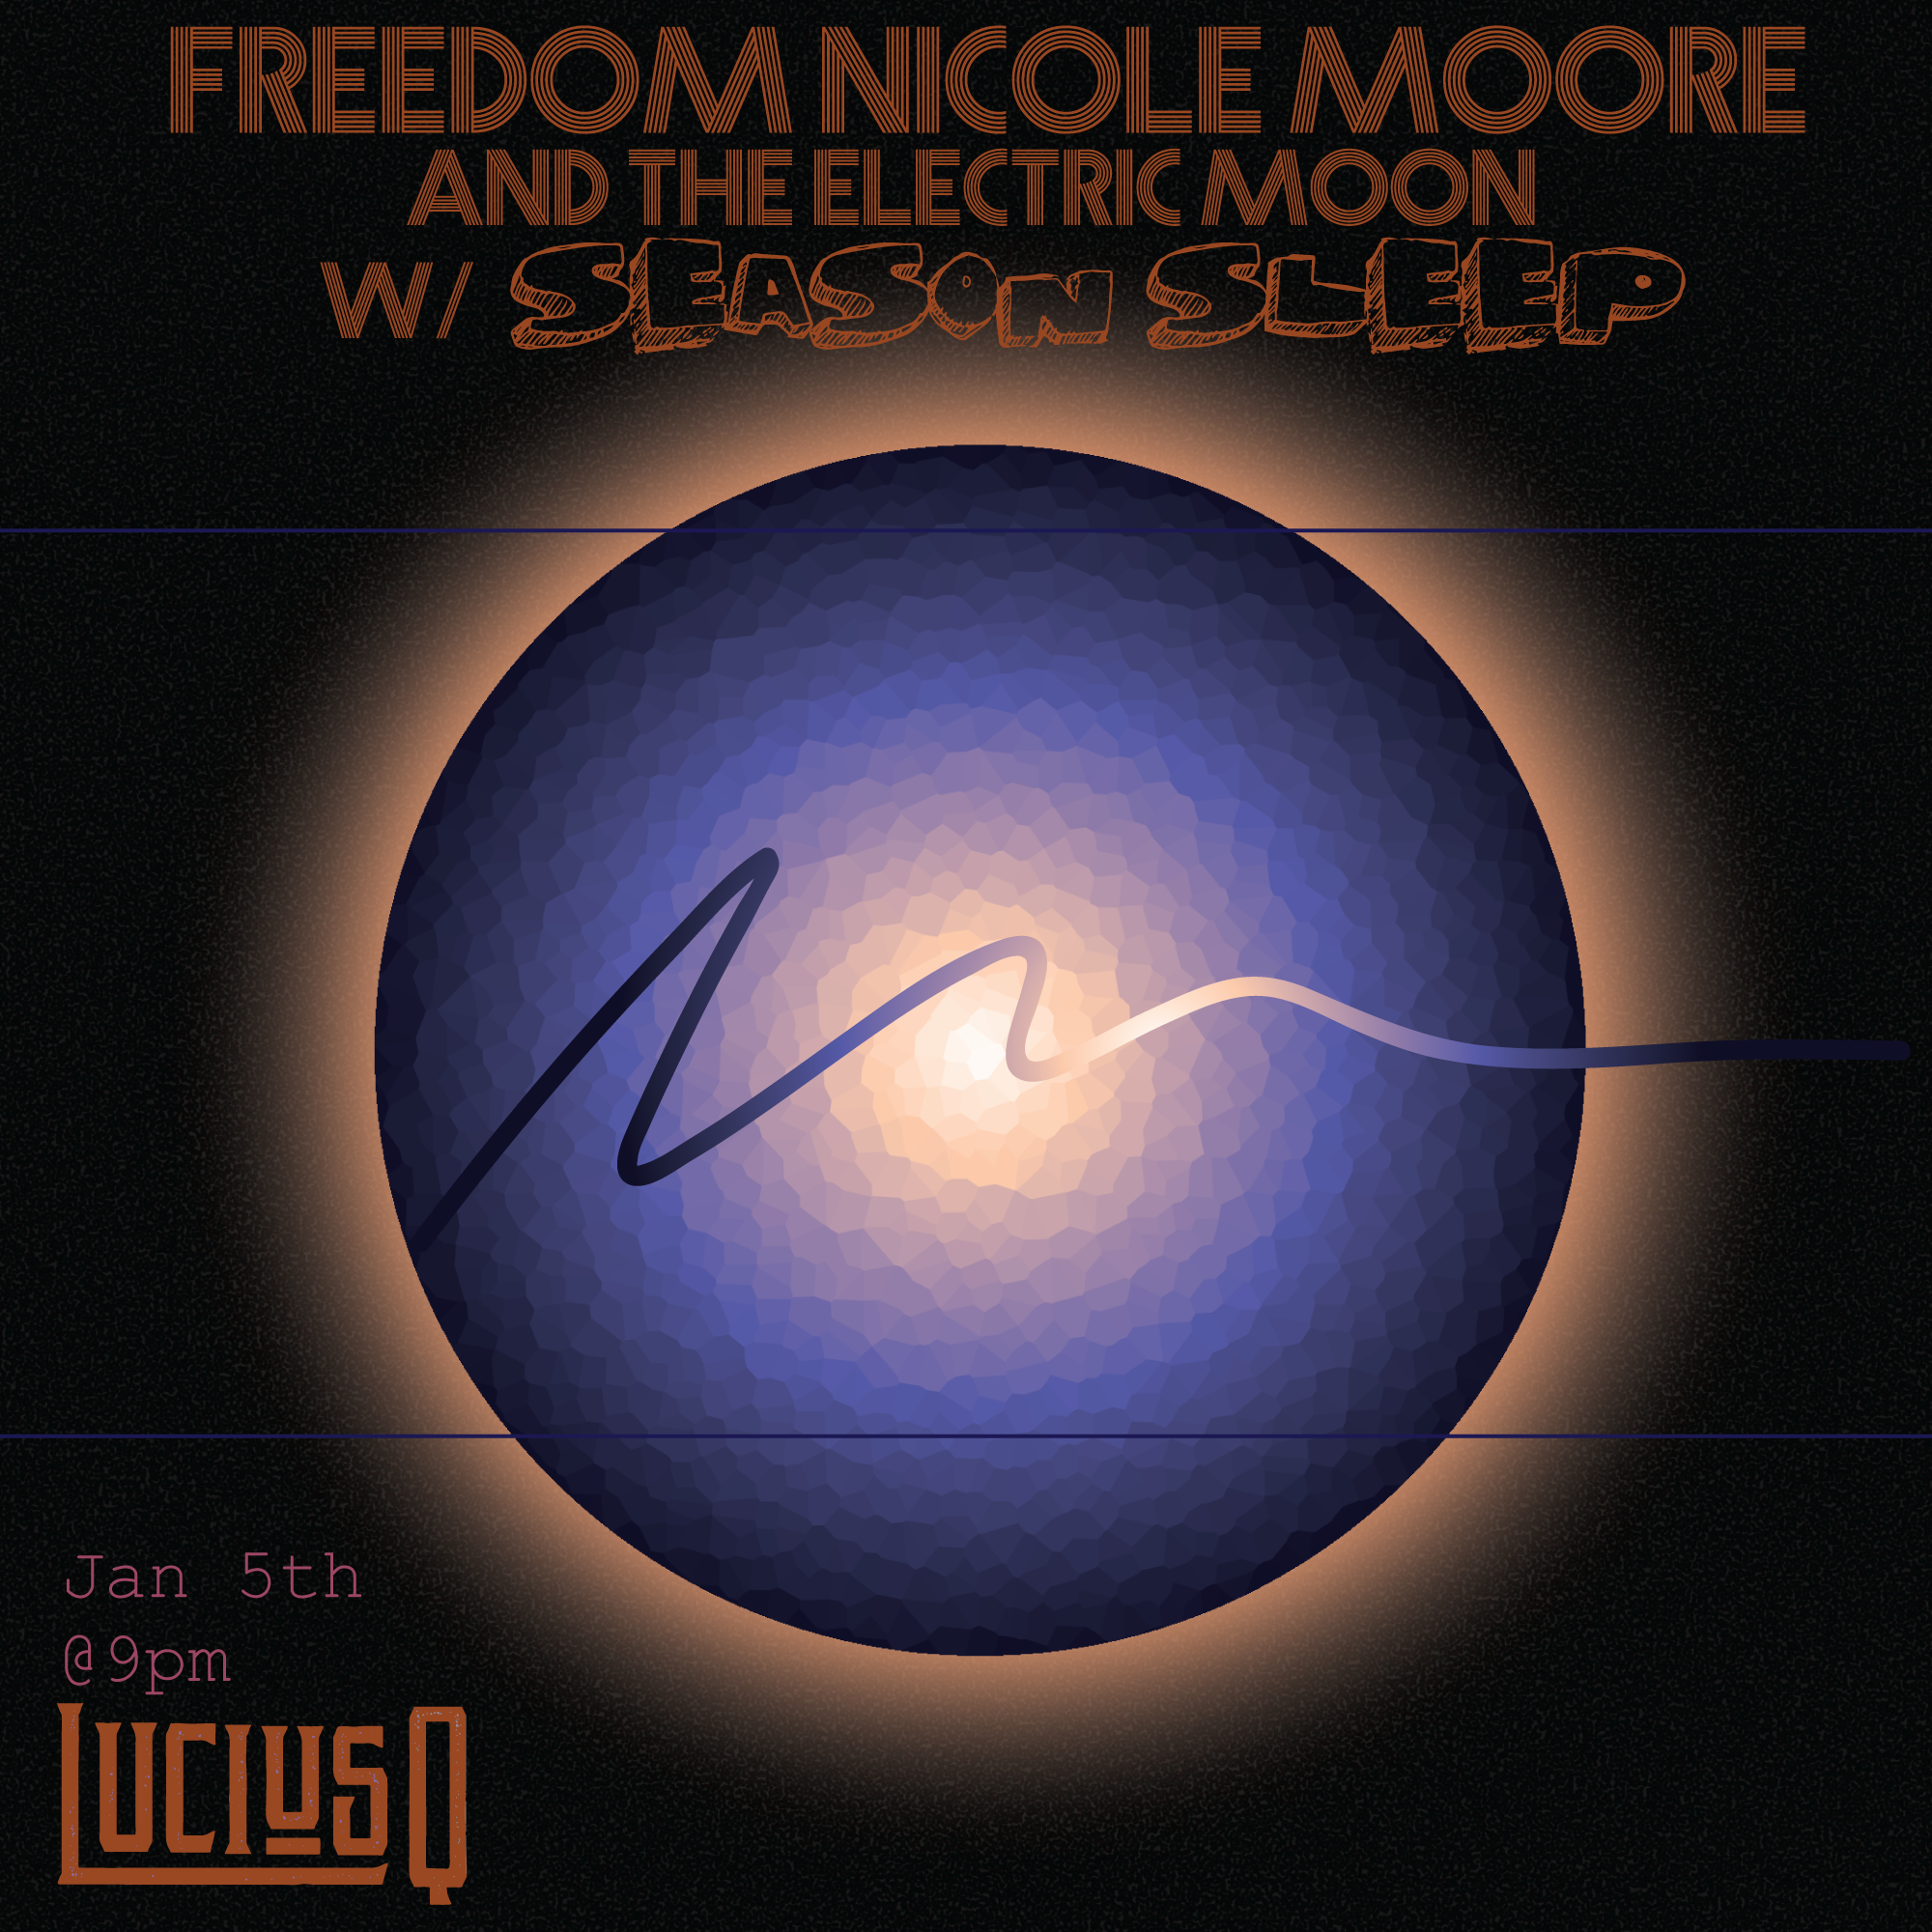 Lucius---Freedom-Nicole-Moore.png